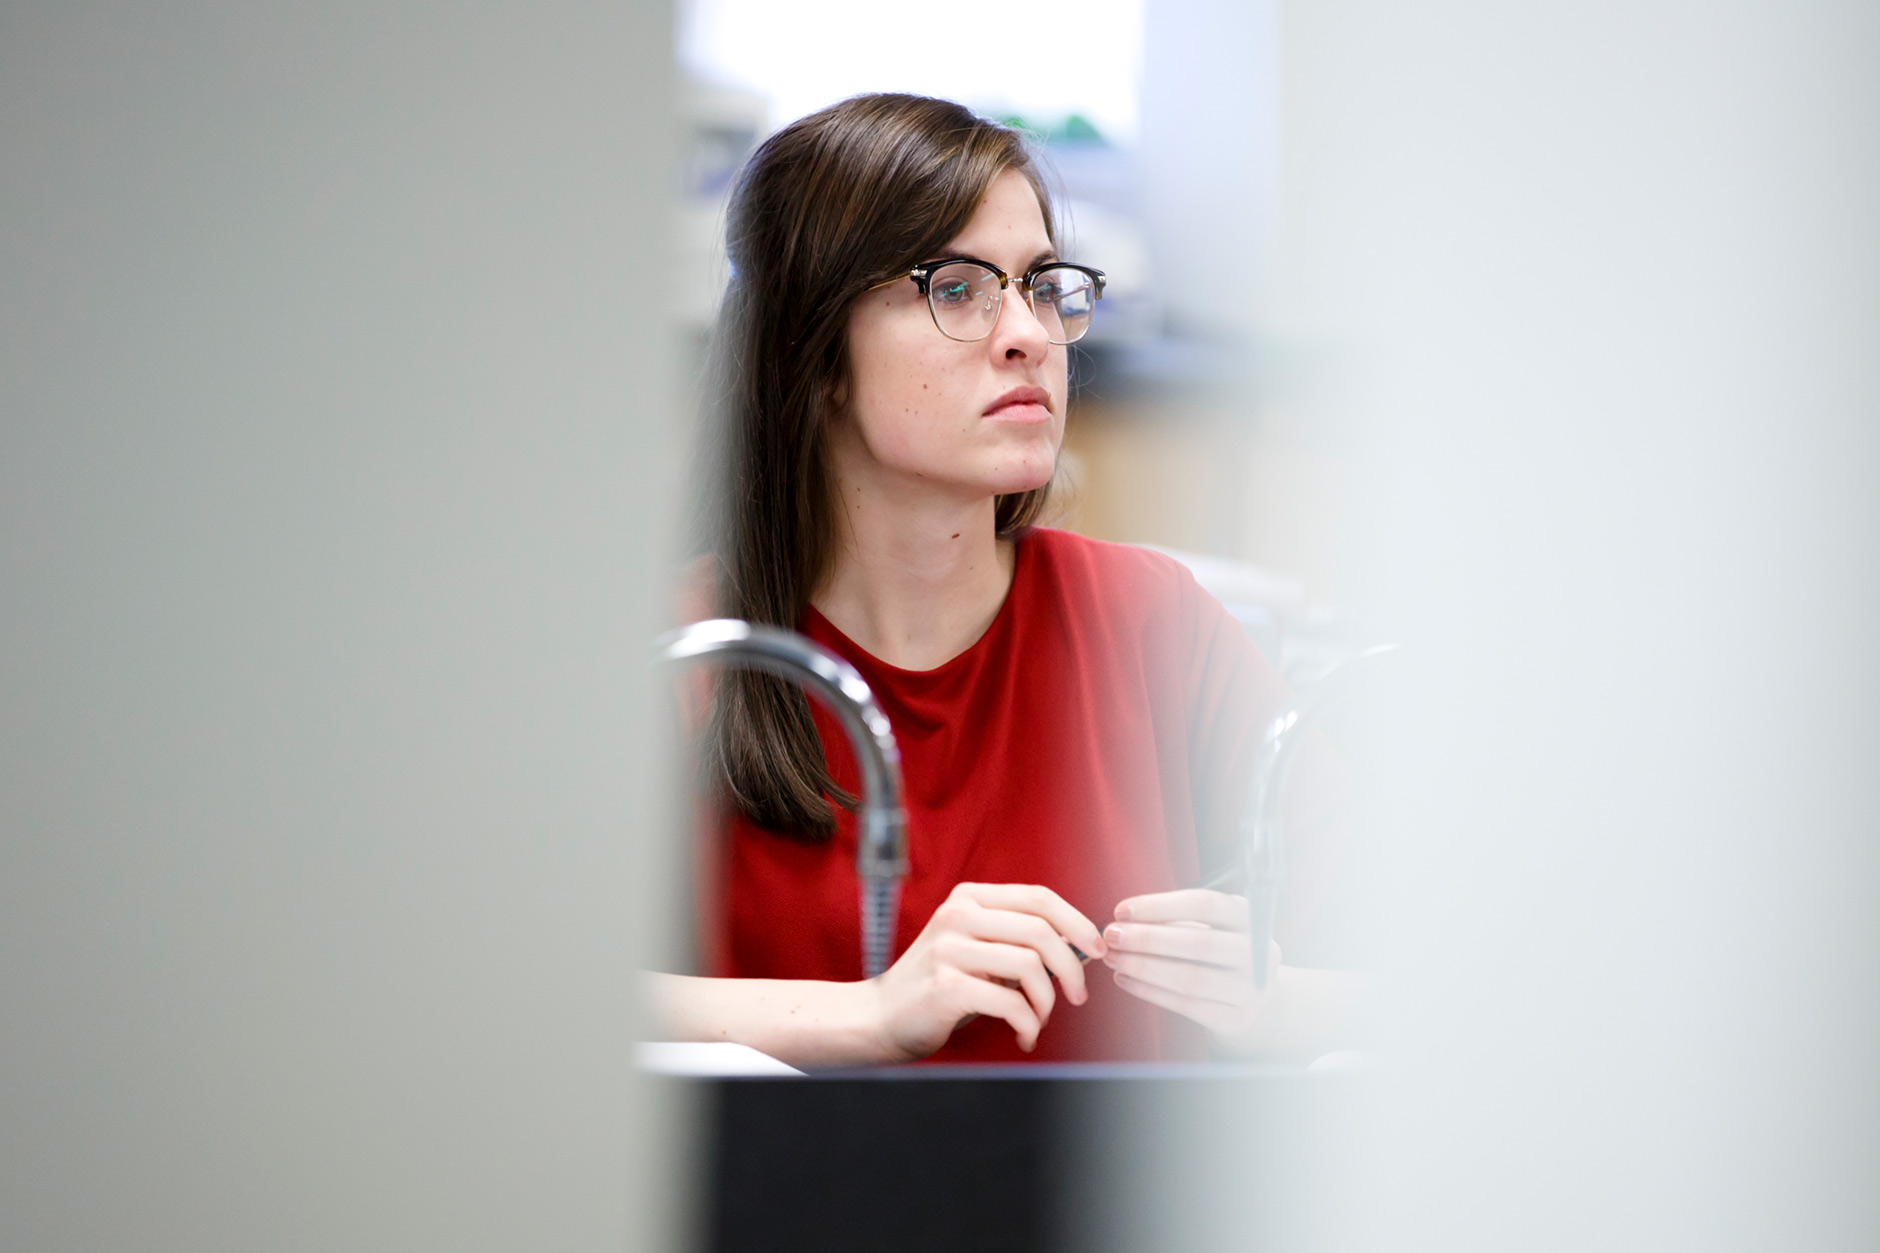 Emily Edwards, a graduating senior at IUPUC, listens during a Biology class on Thursday, April 5, 2018. (James Brosher/IU Communications)